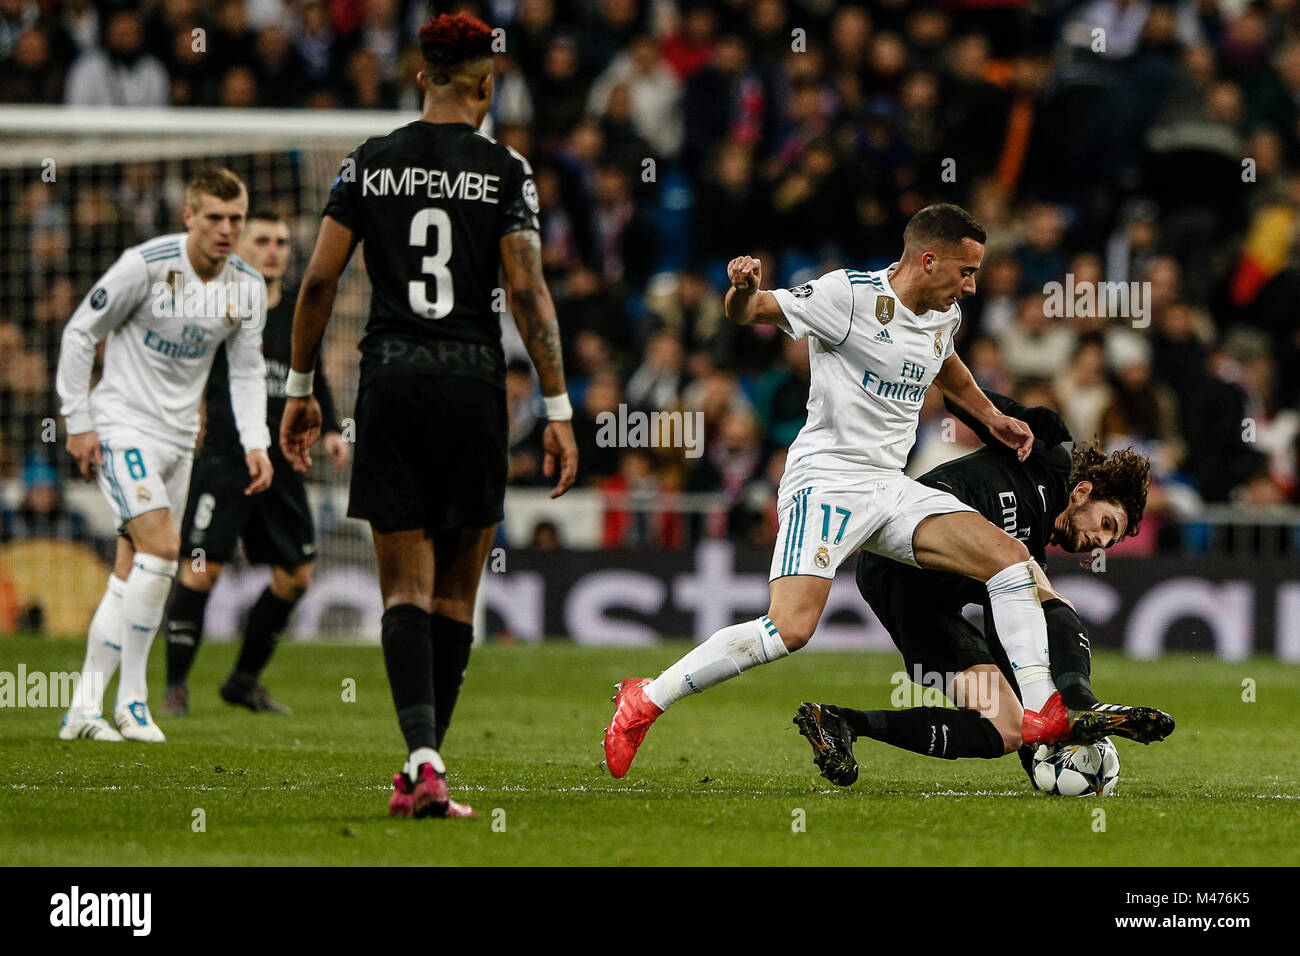 Lucas Vazquez (Real Madrid) fights for control of the ball with Adrien  Rabiot (